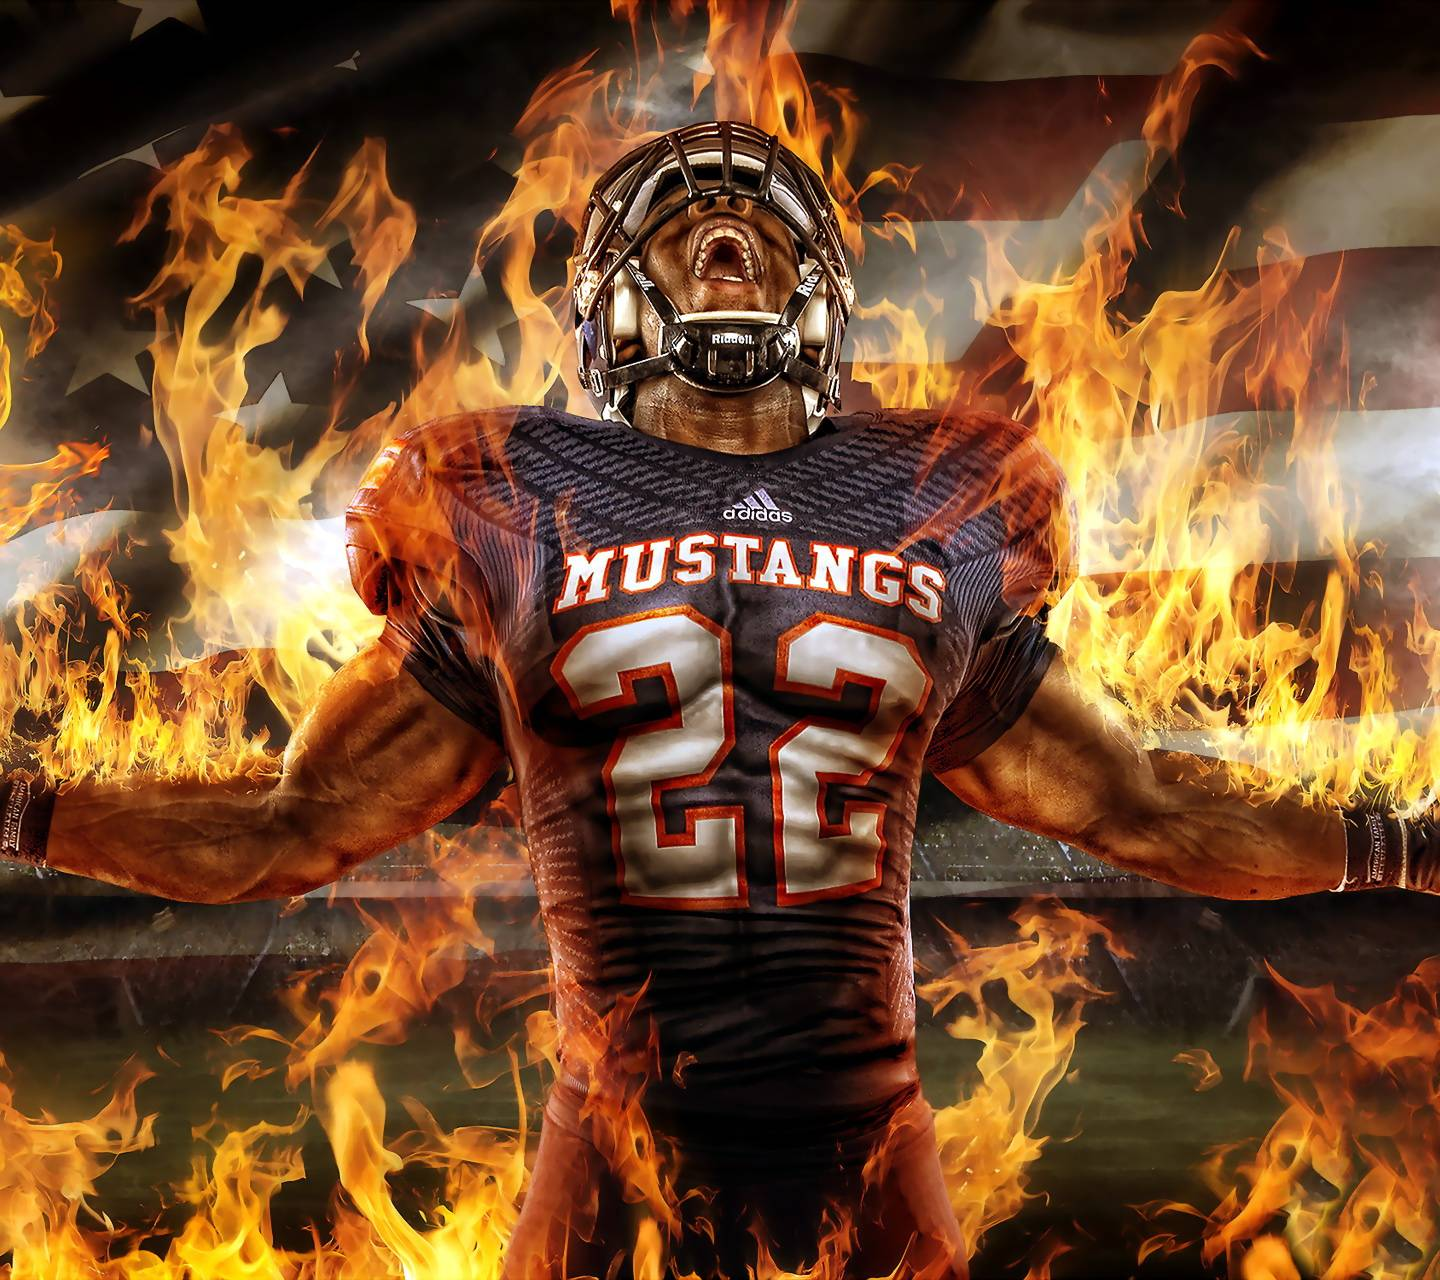 On Fire for Game